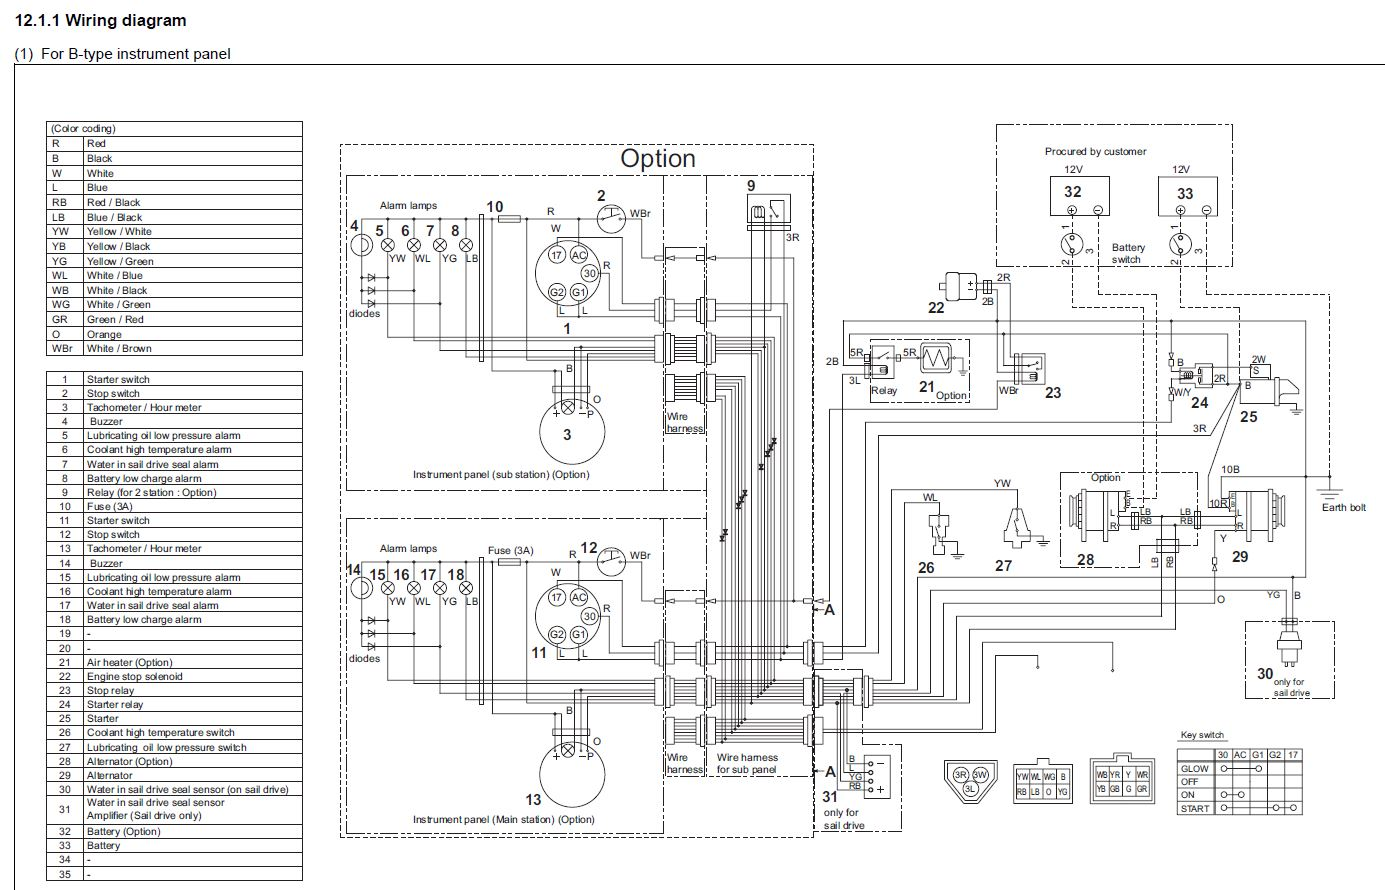 Hitachi 24 Volt Alternator Wiring Diagram : Hitachi voltage regulator wiring diagram library